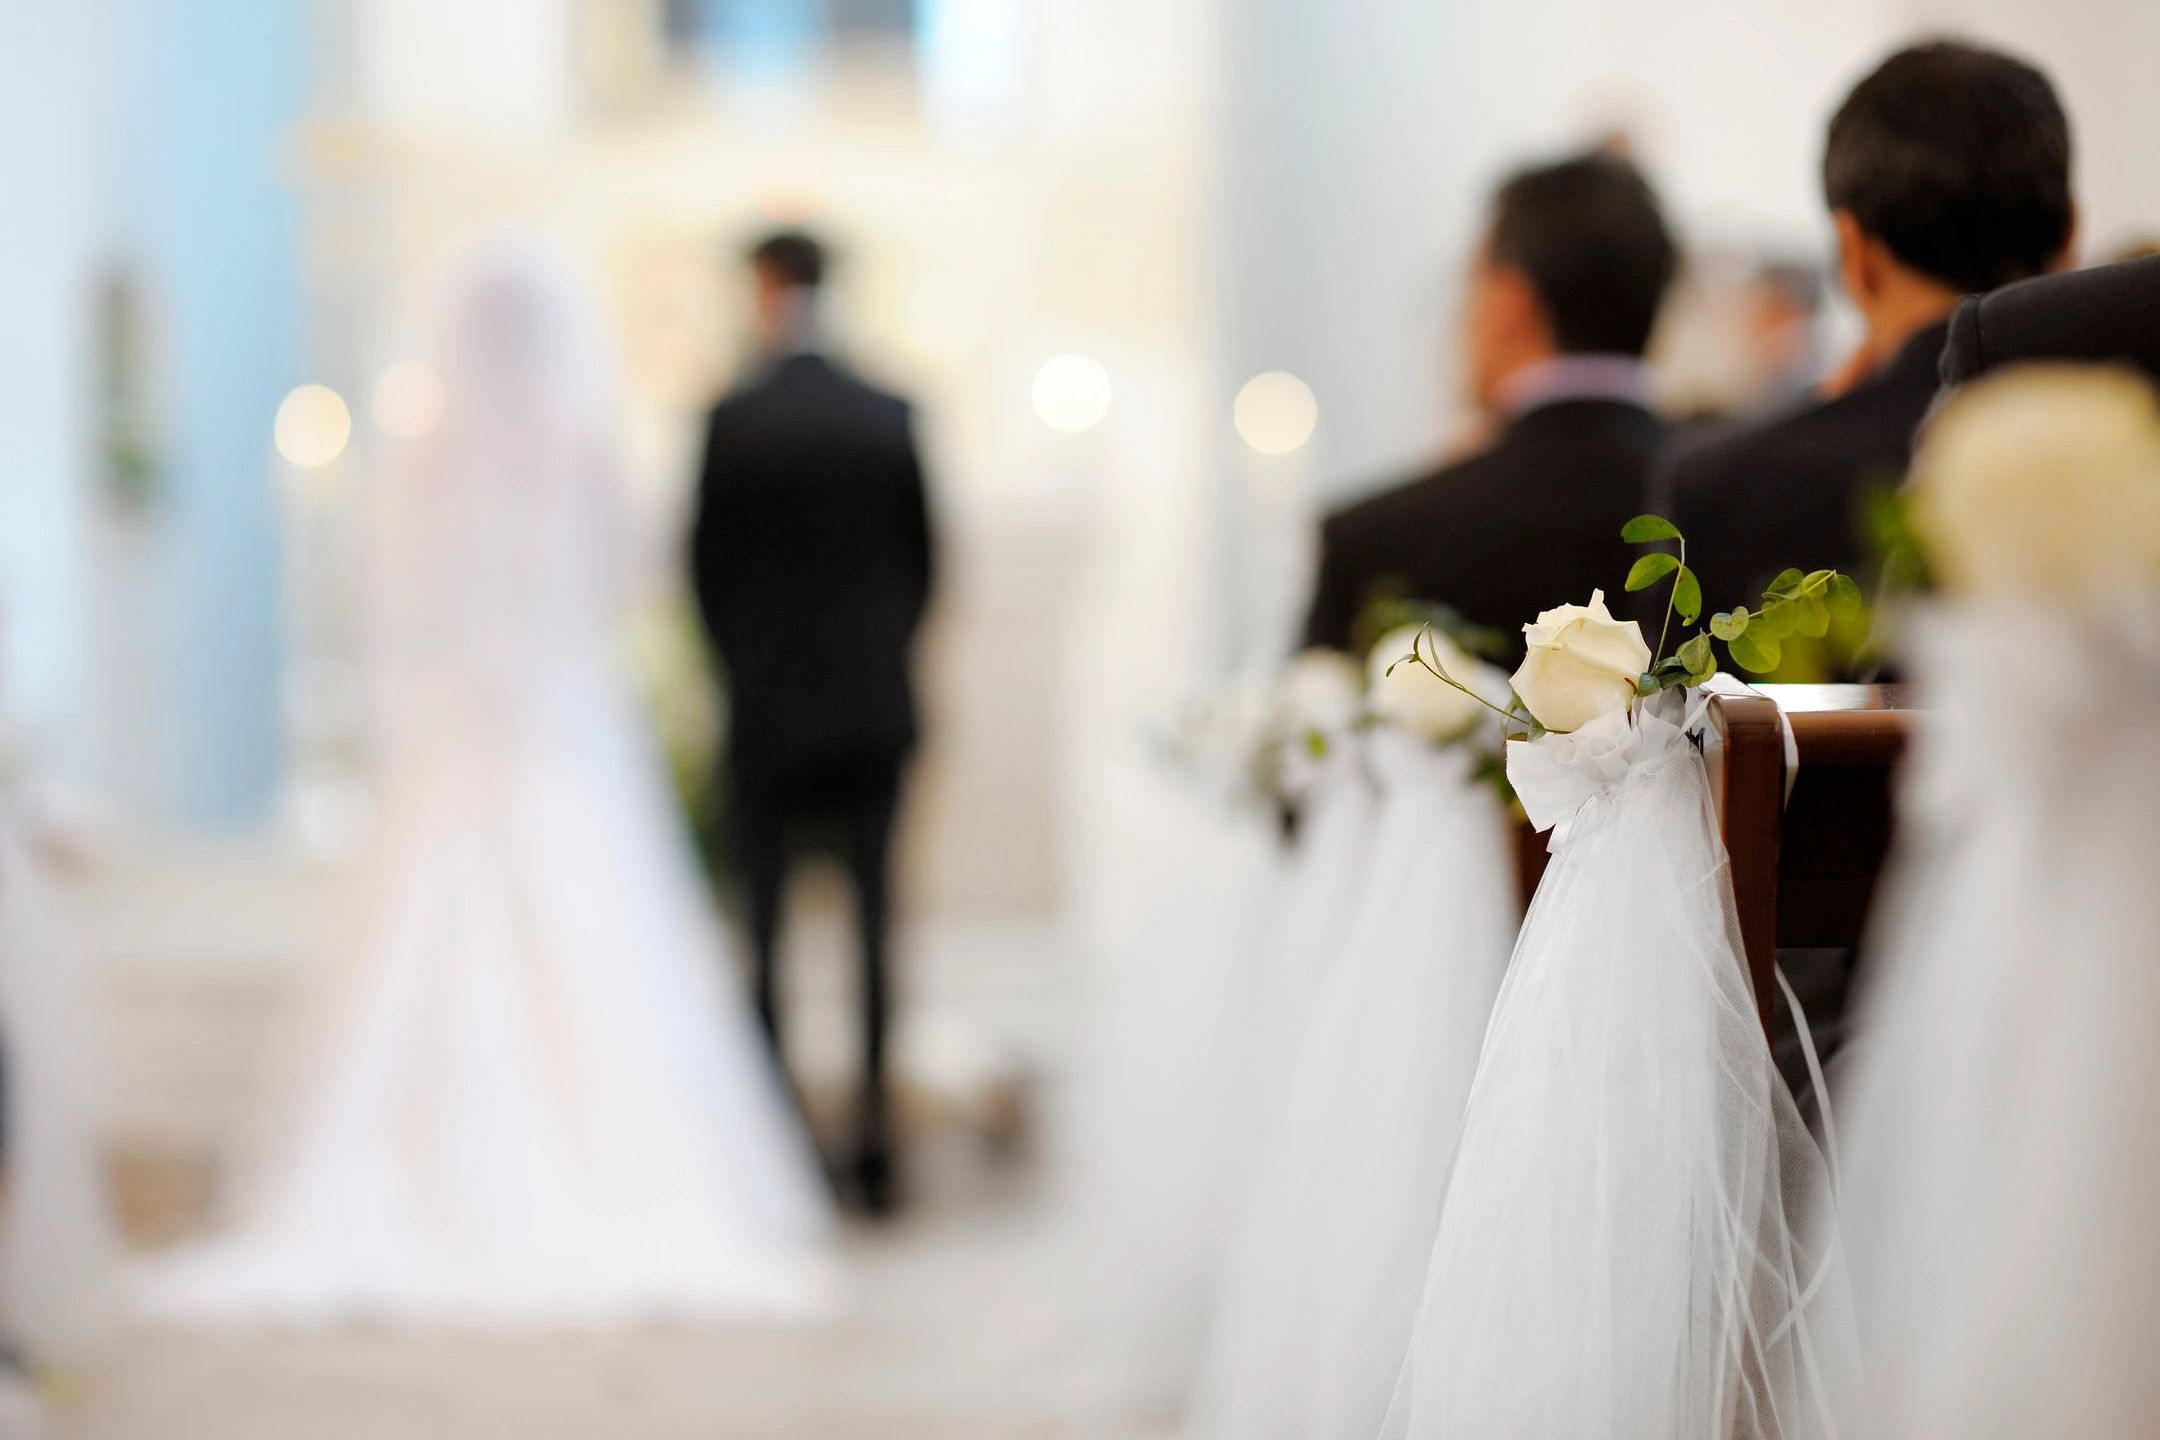 Julie Ganschow Answers Questions About Marriage